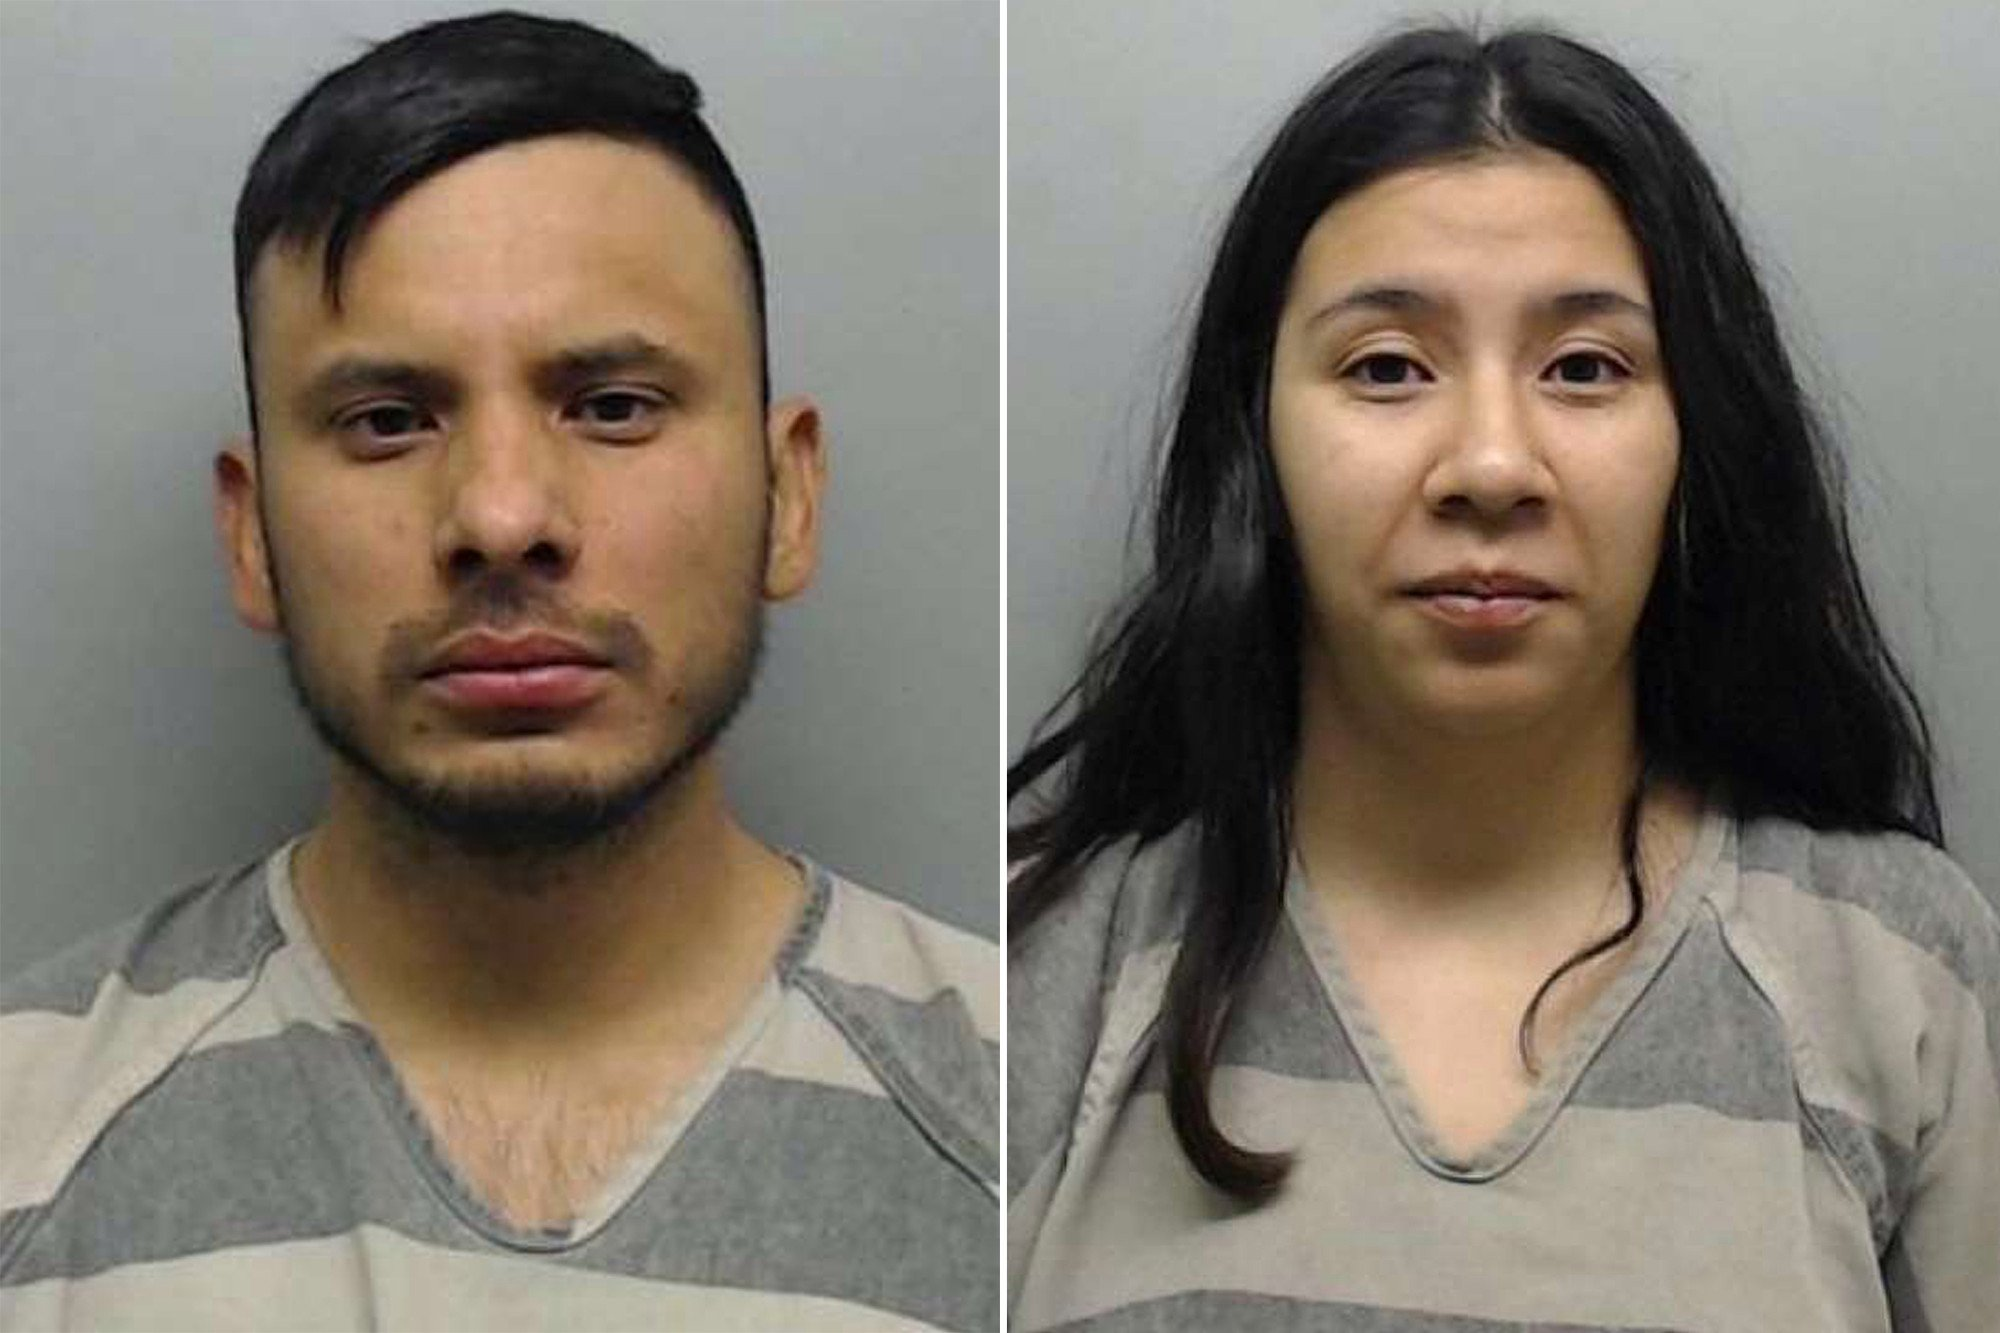 Couple busted having public sex at baseball field